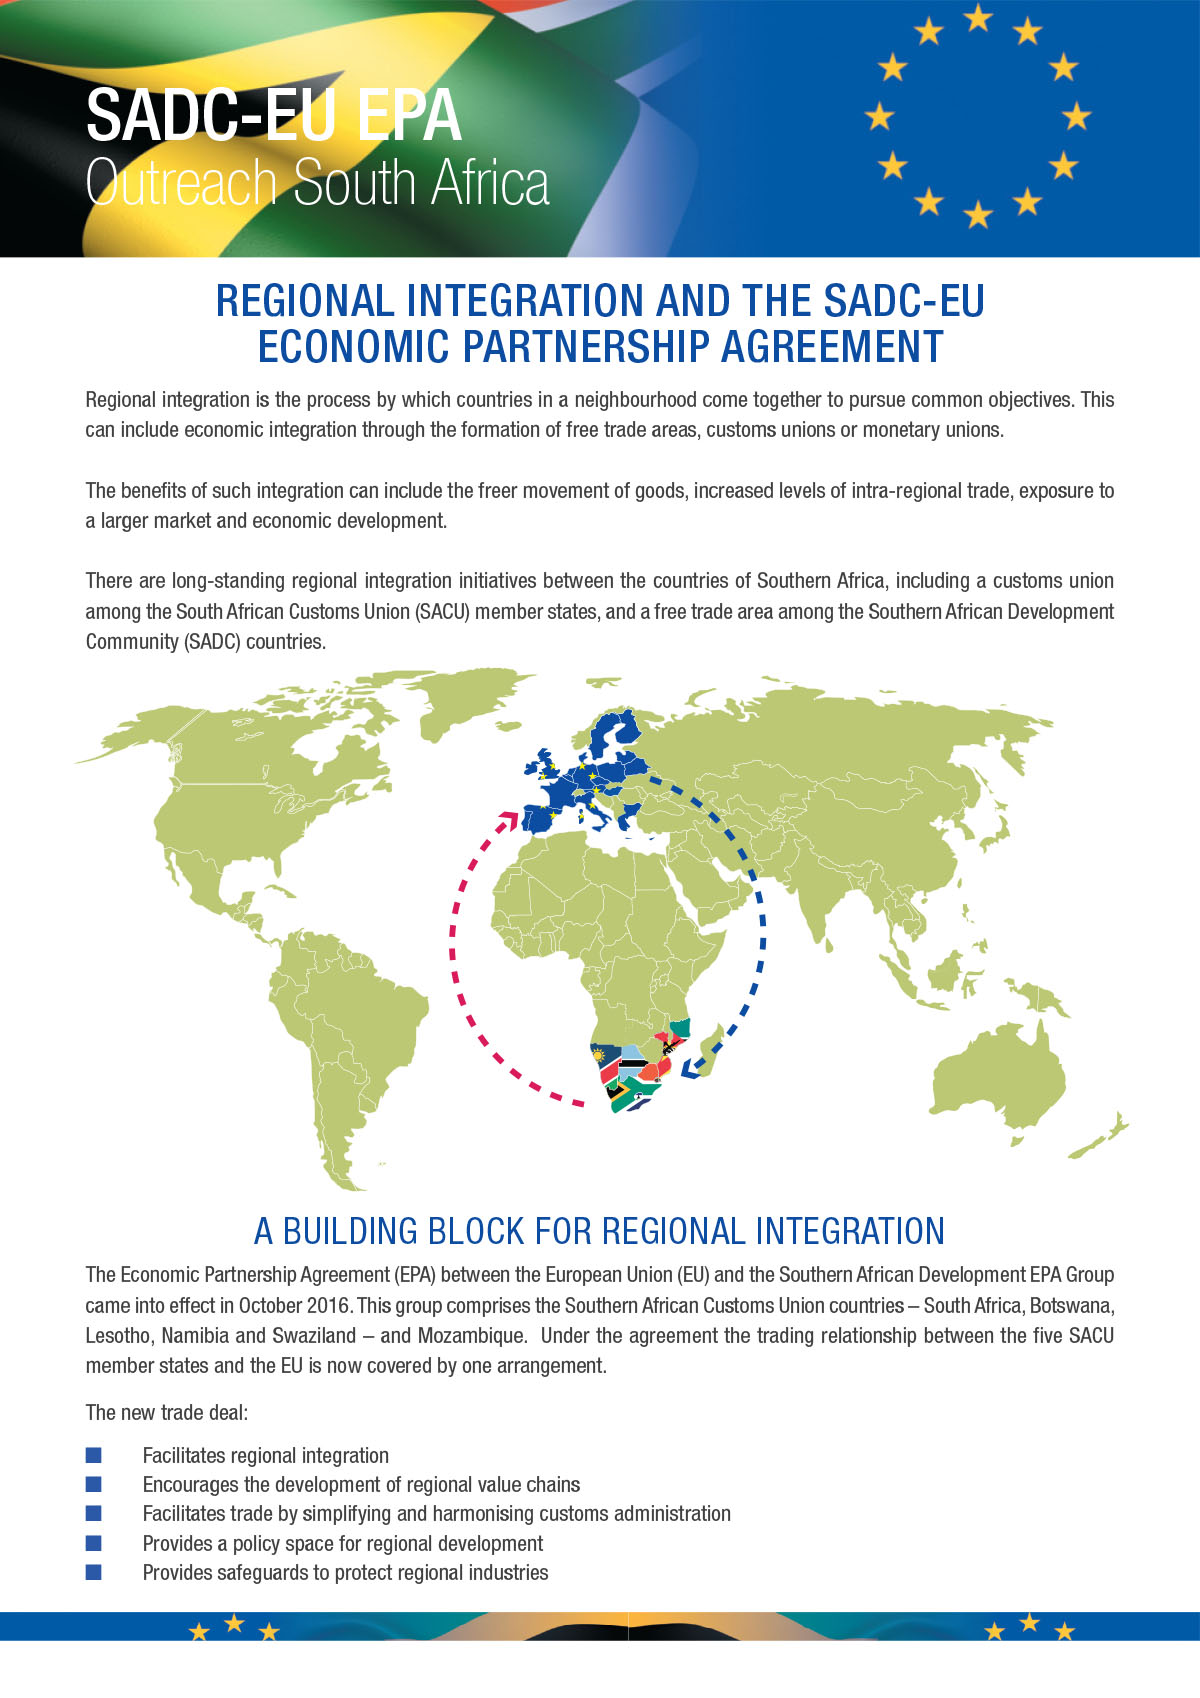 Regional Integration and the SADC-EU EPA